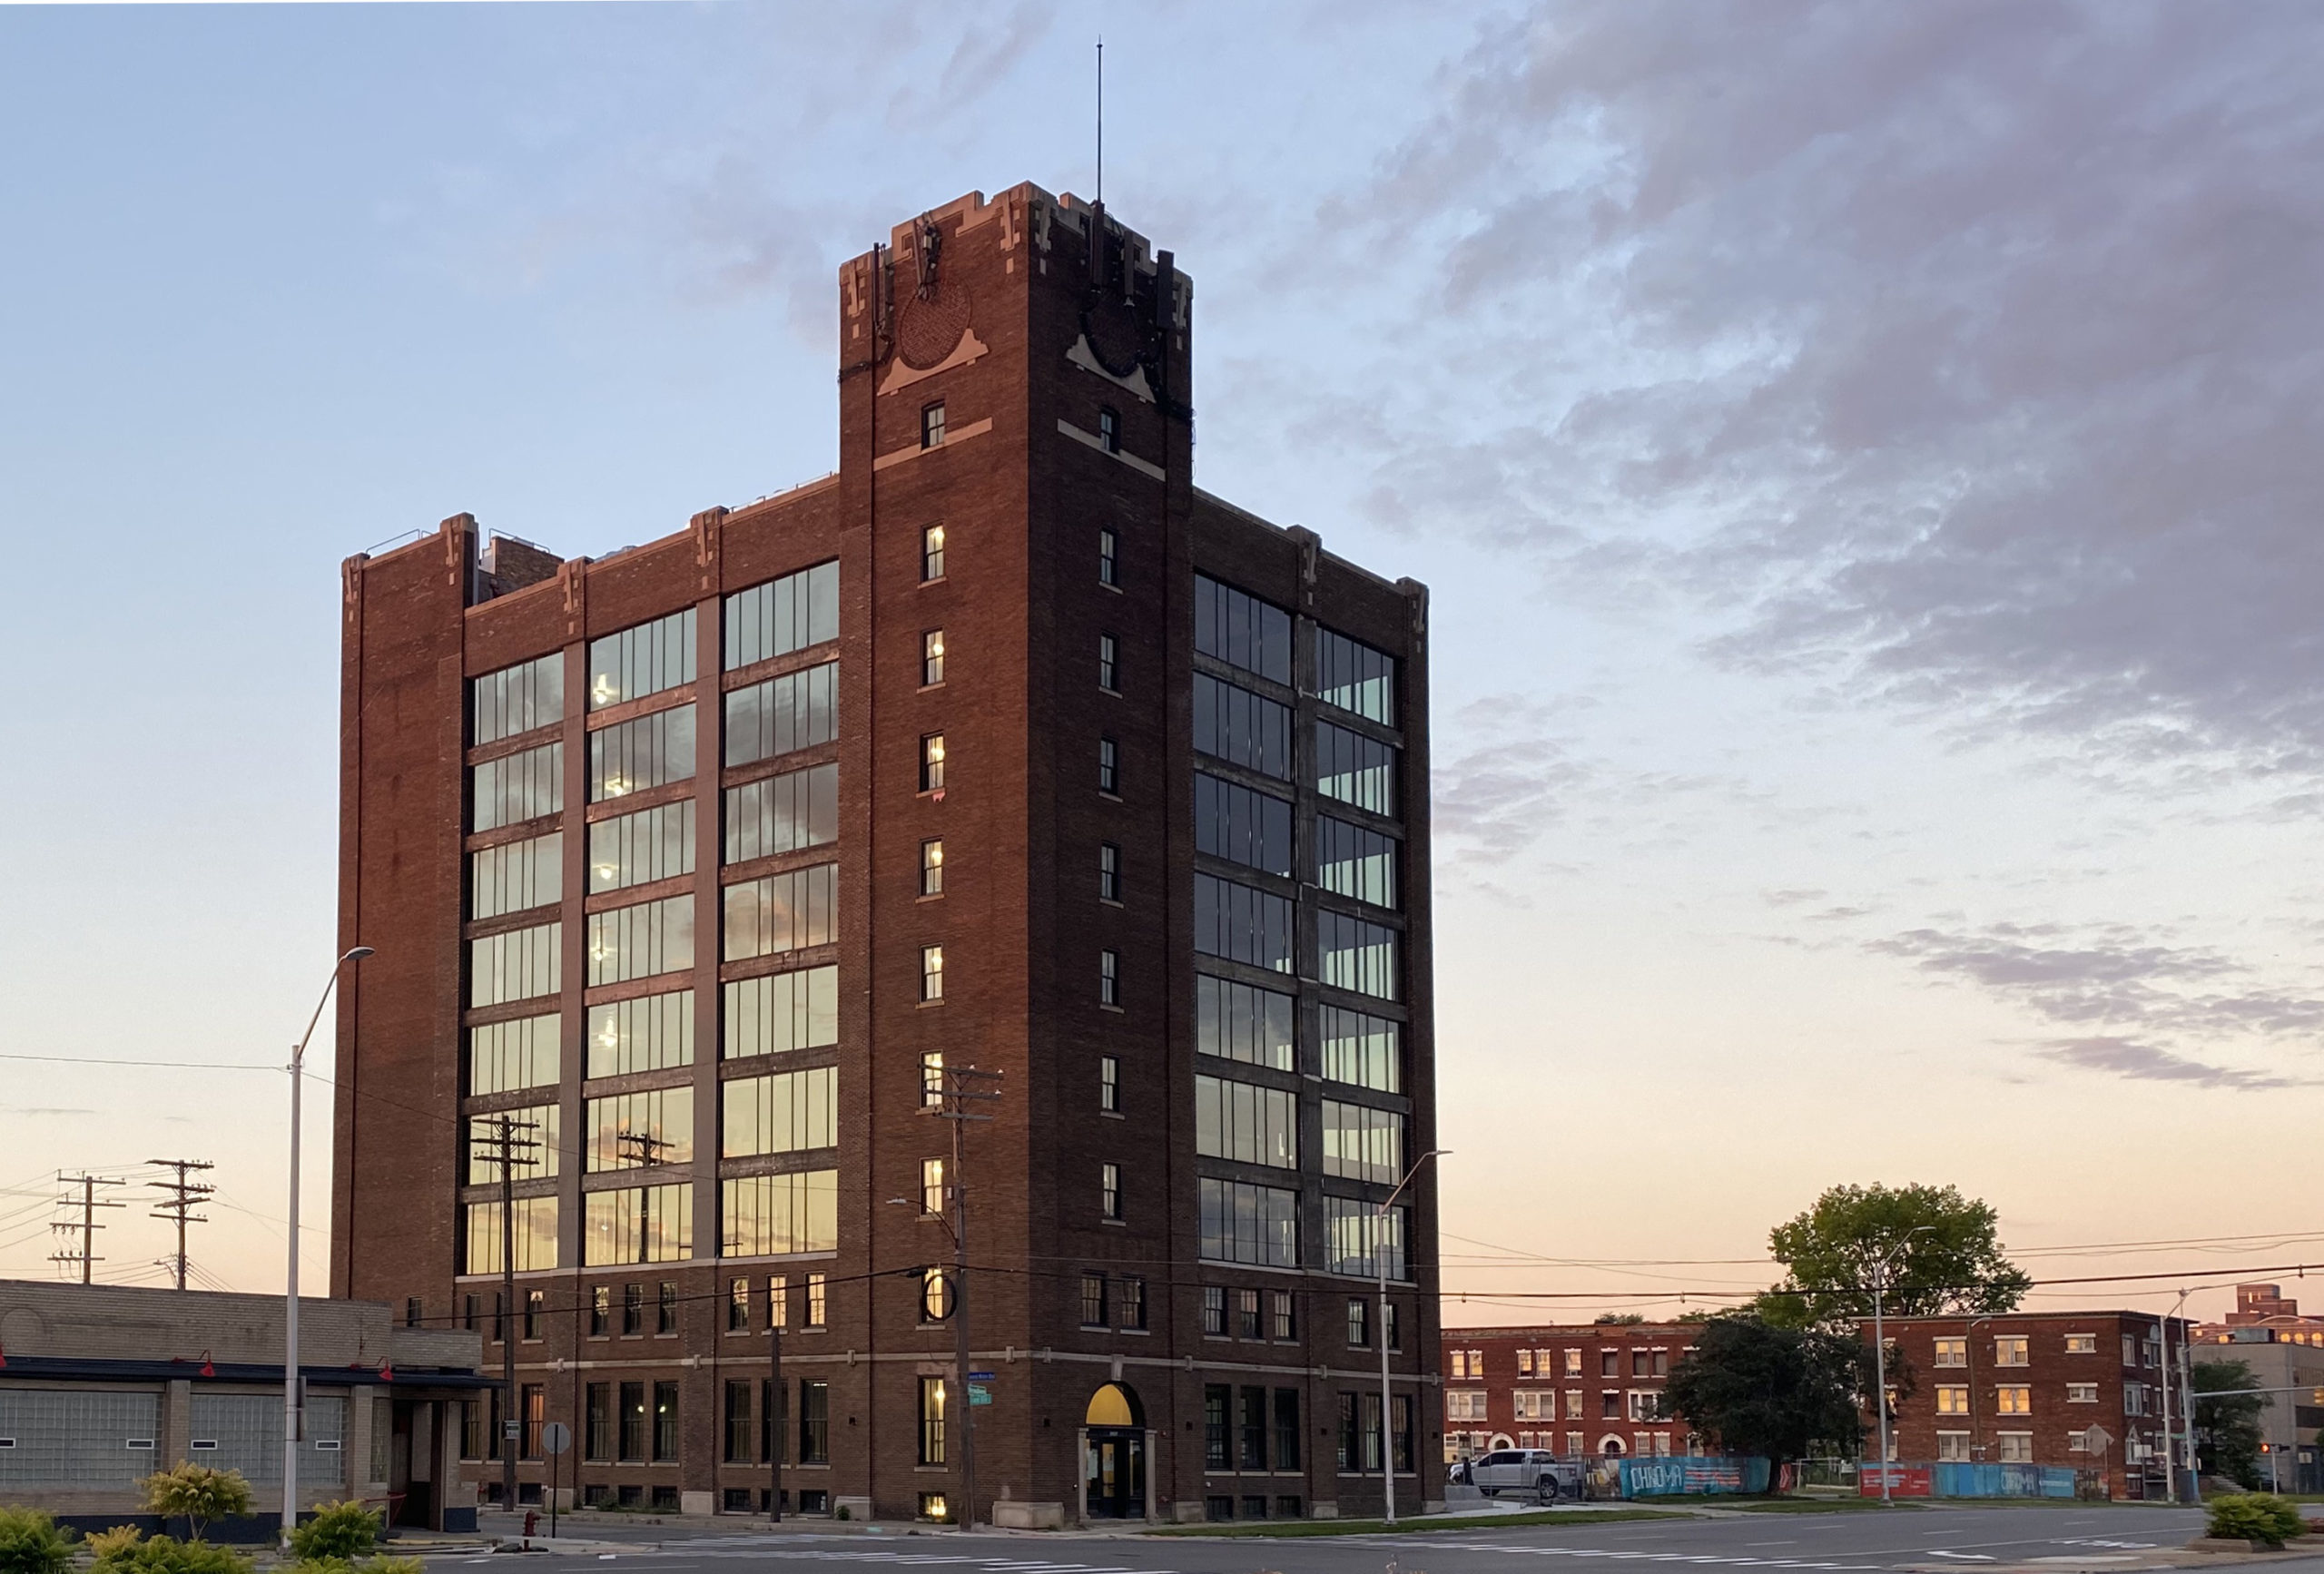 View of Chroma office building along E. Grand Boulevard in Detroit